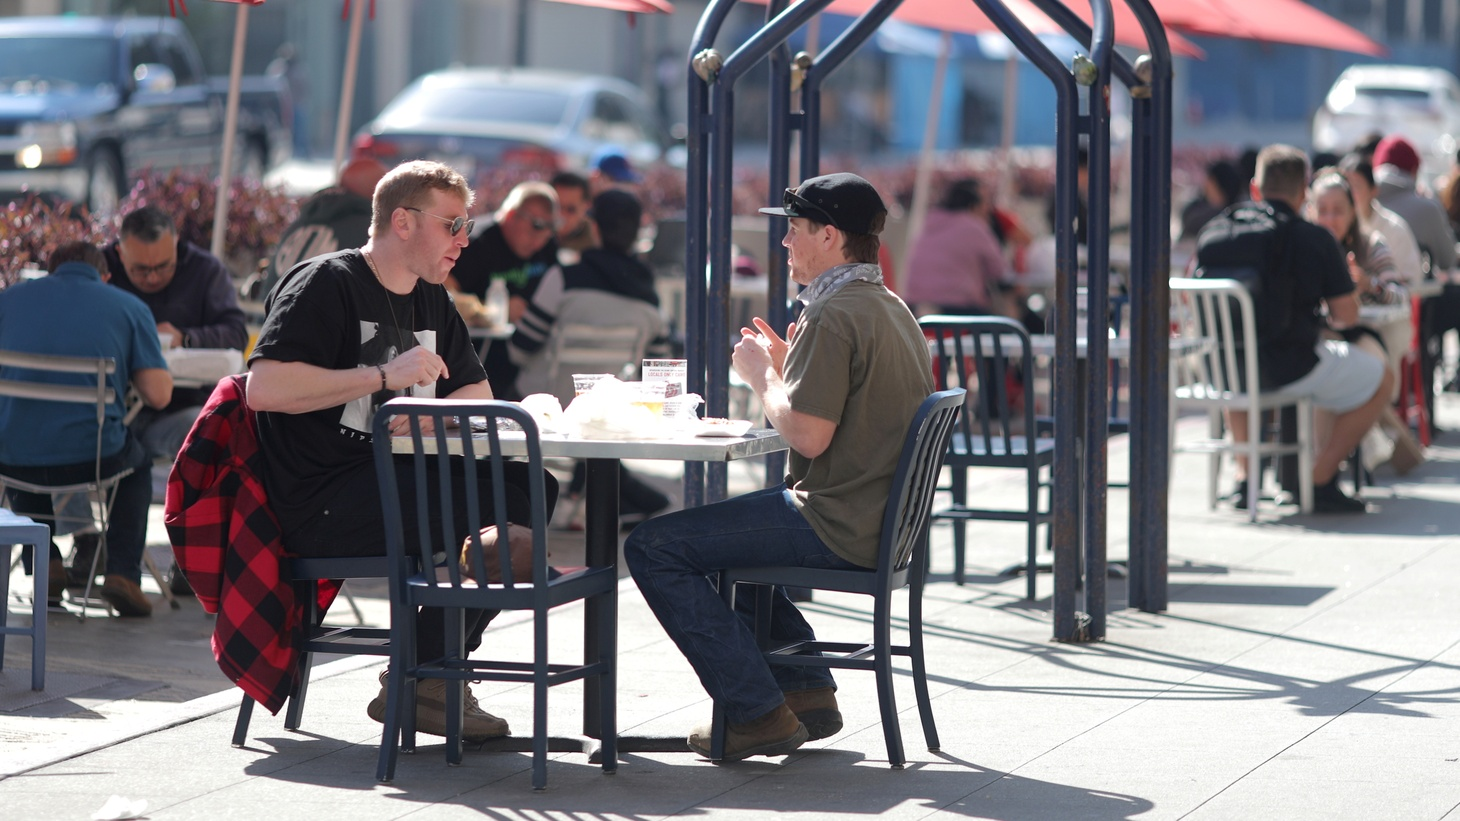 People eat at outdoor dining tables at Grand Central Market, as the coronavirus disease (COVID-19) outbreak continues, in Los Angeles, California, U.S., February 3, 2021.